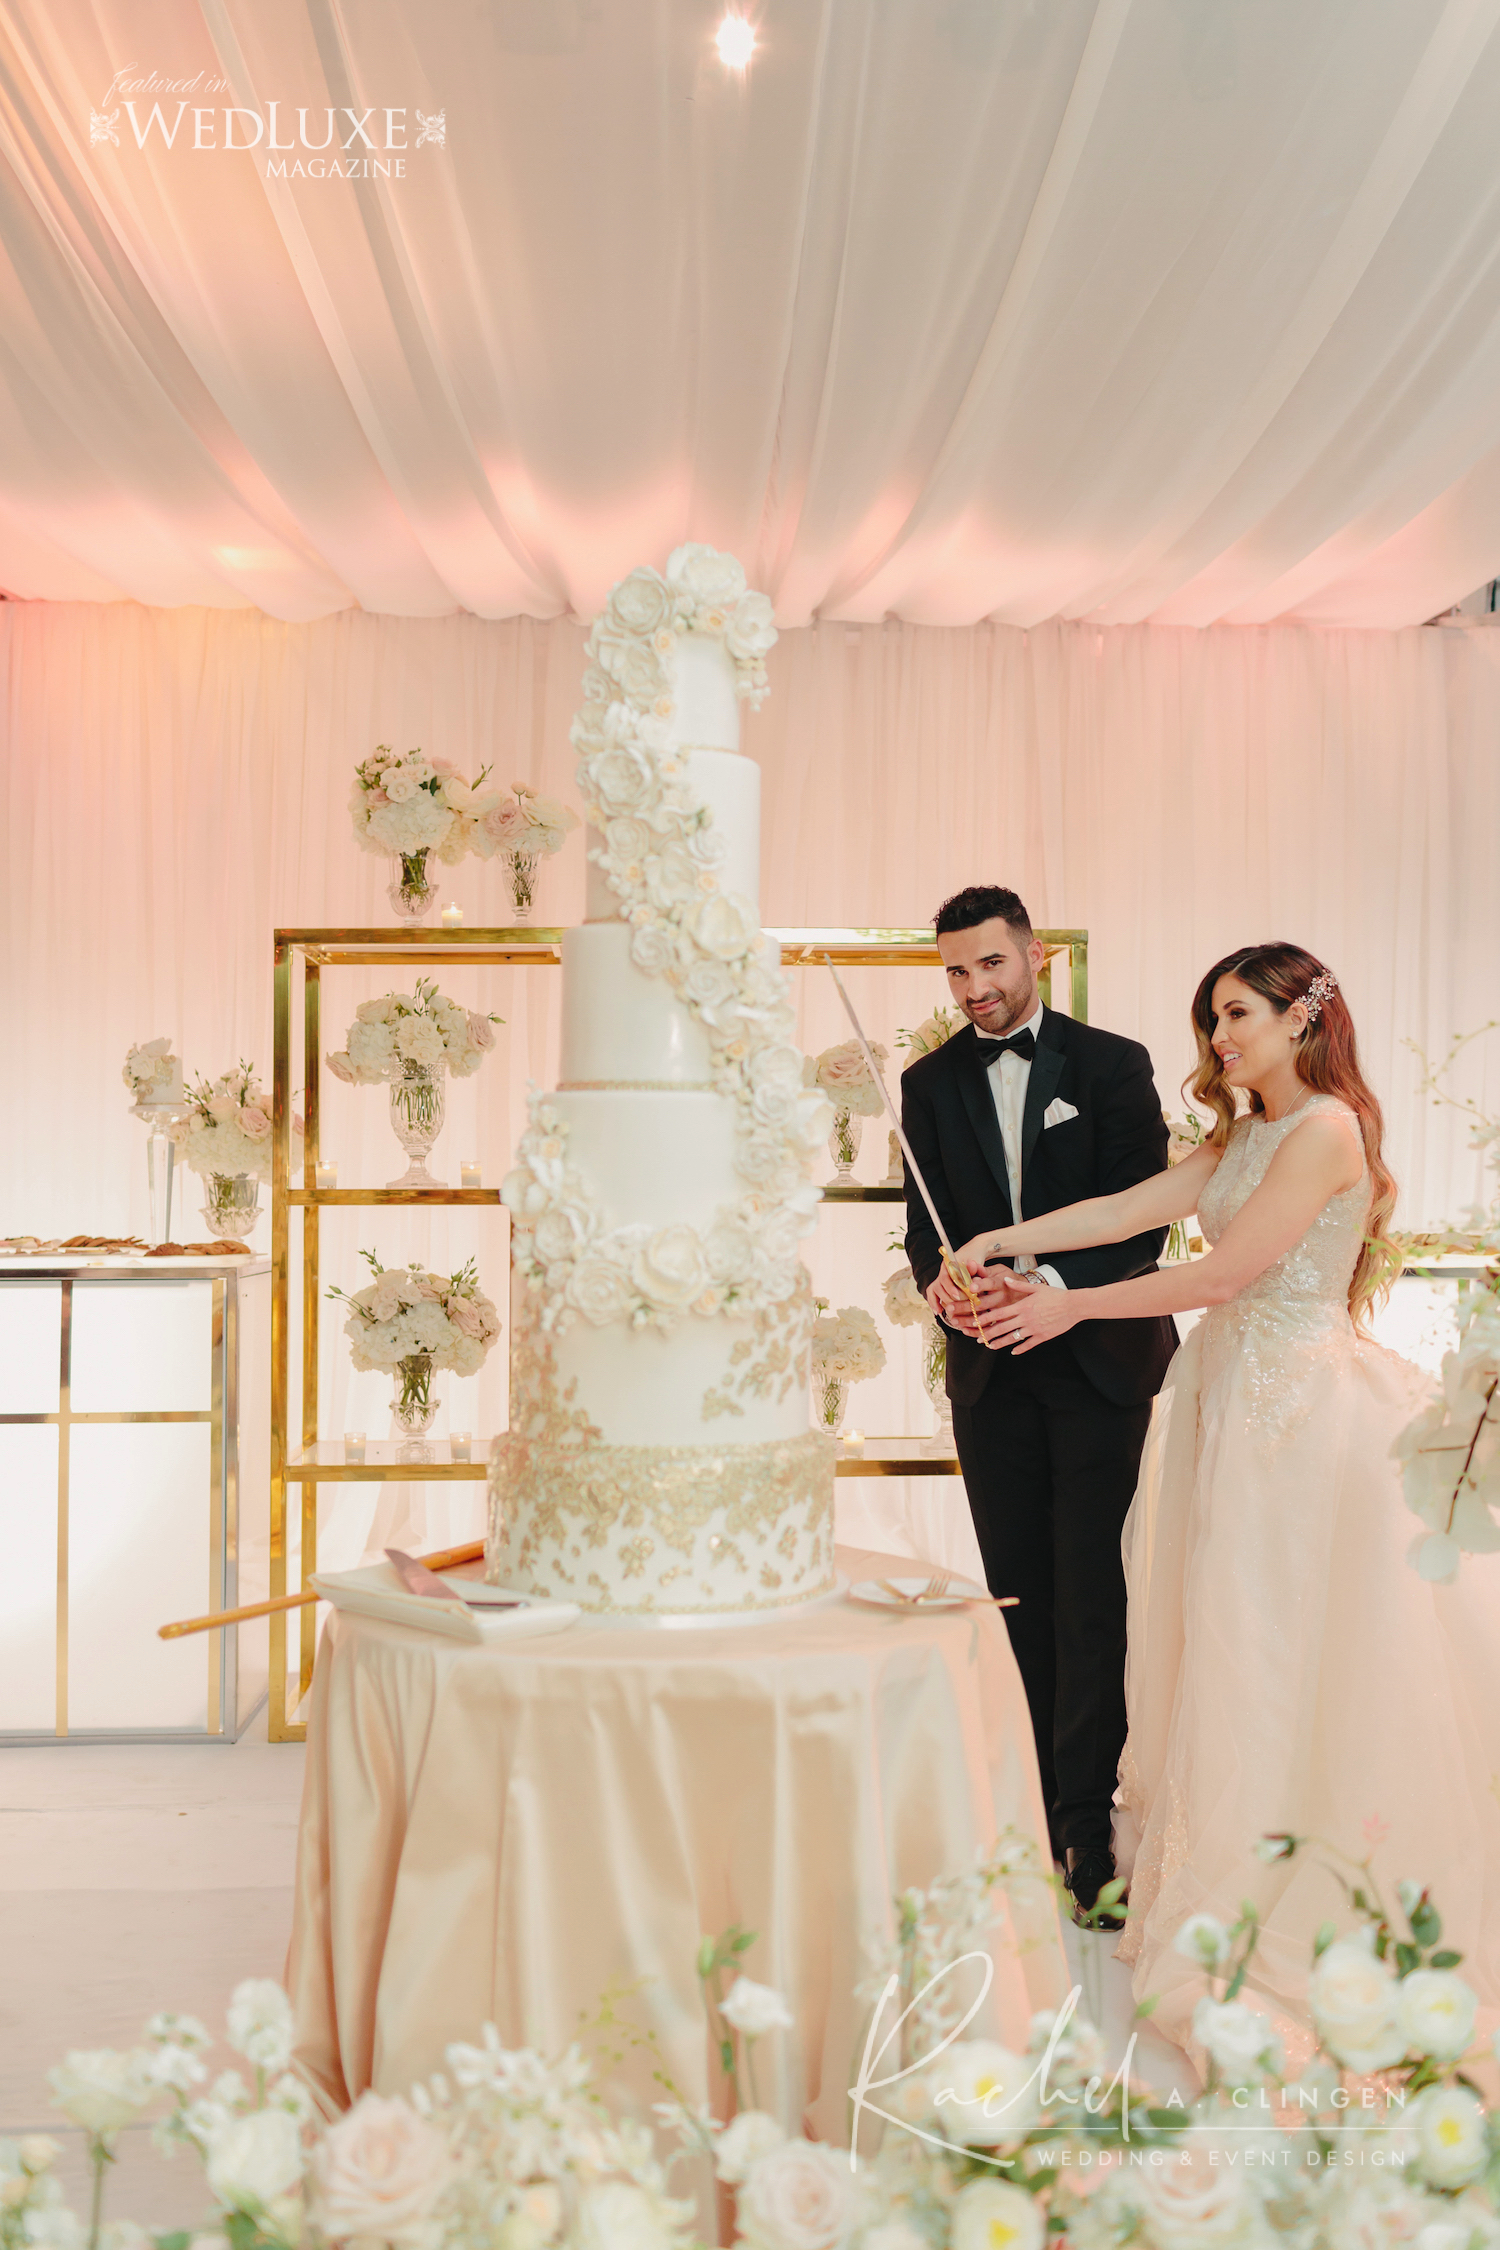 nazem kadri wedding design toronto